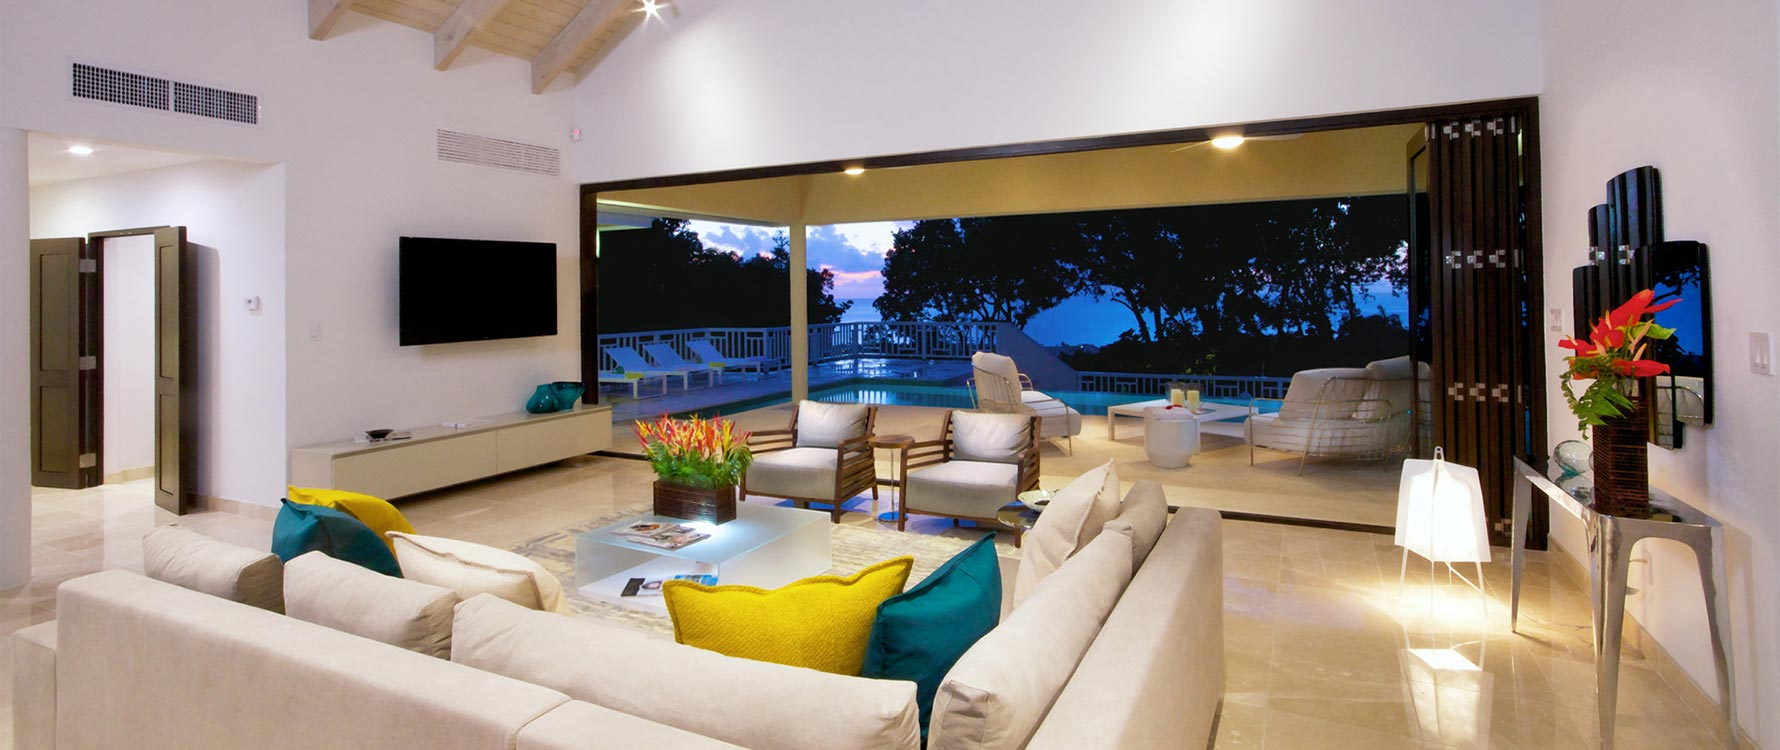 Living room opened to pool deck